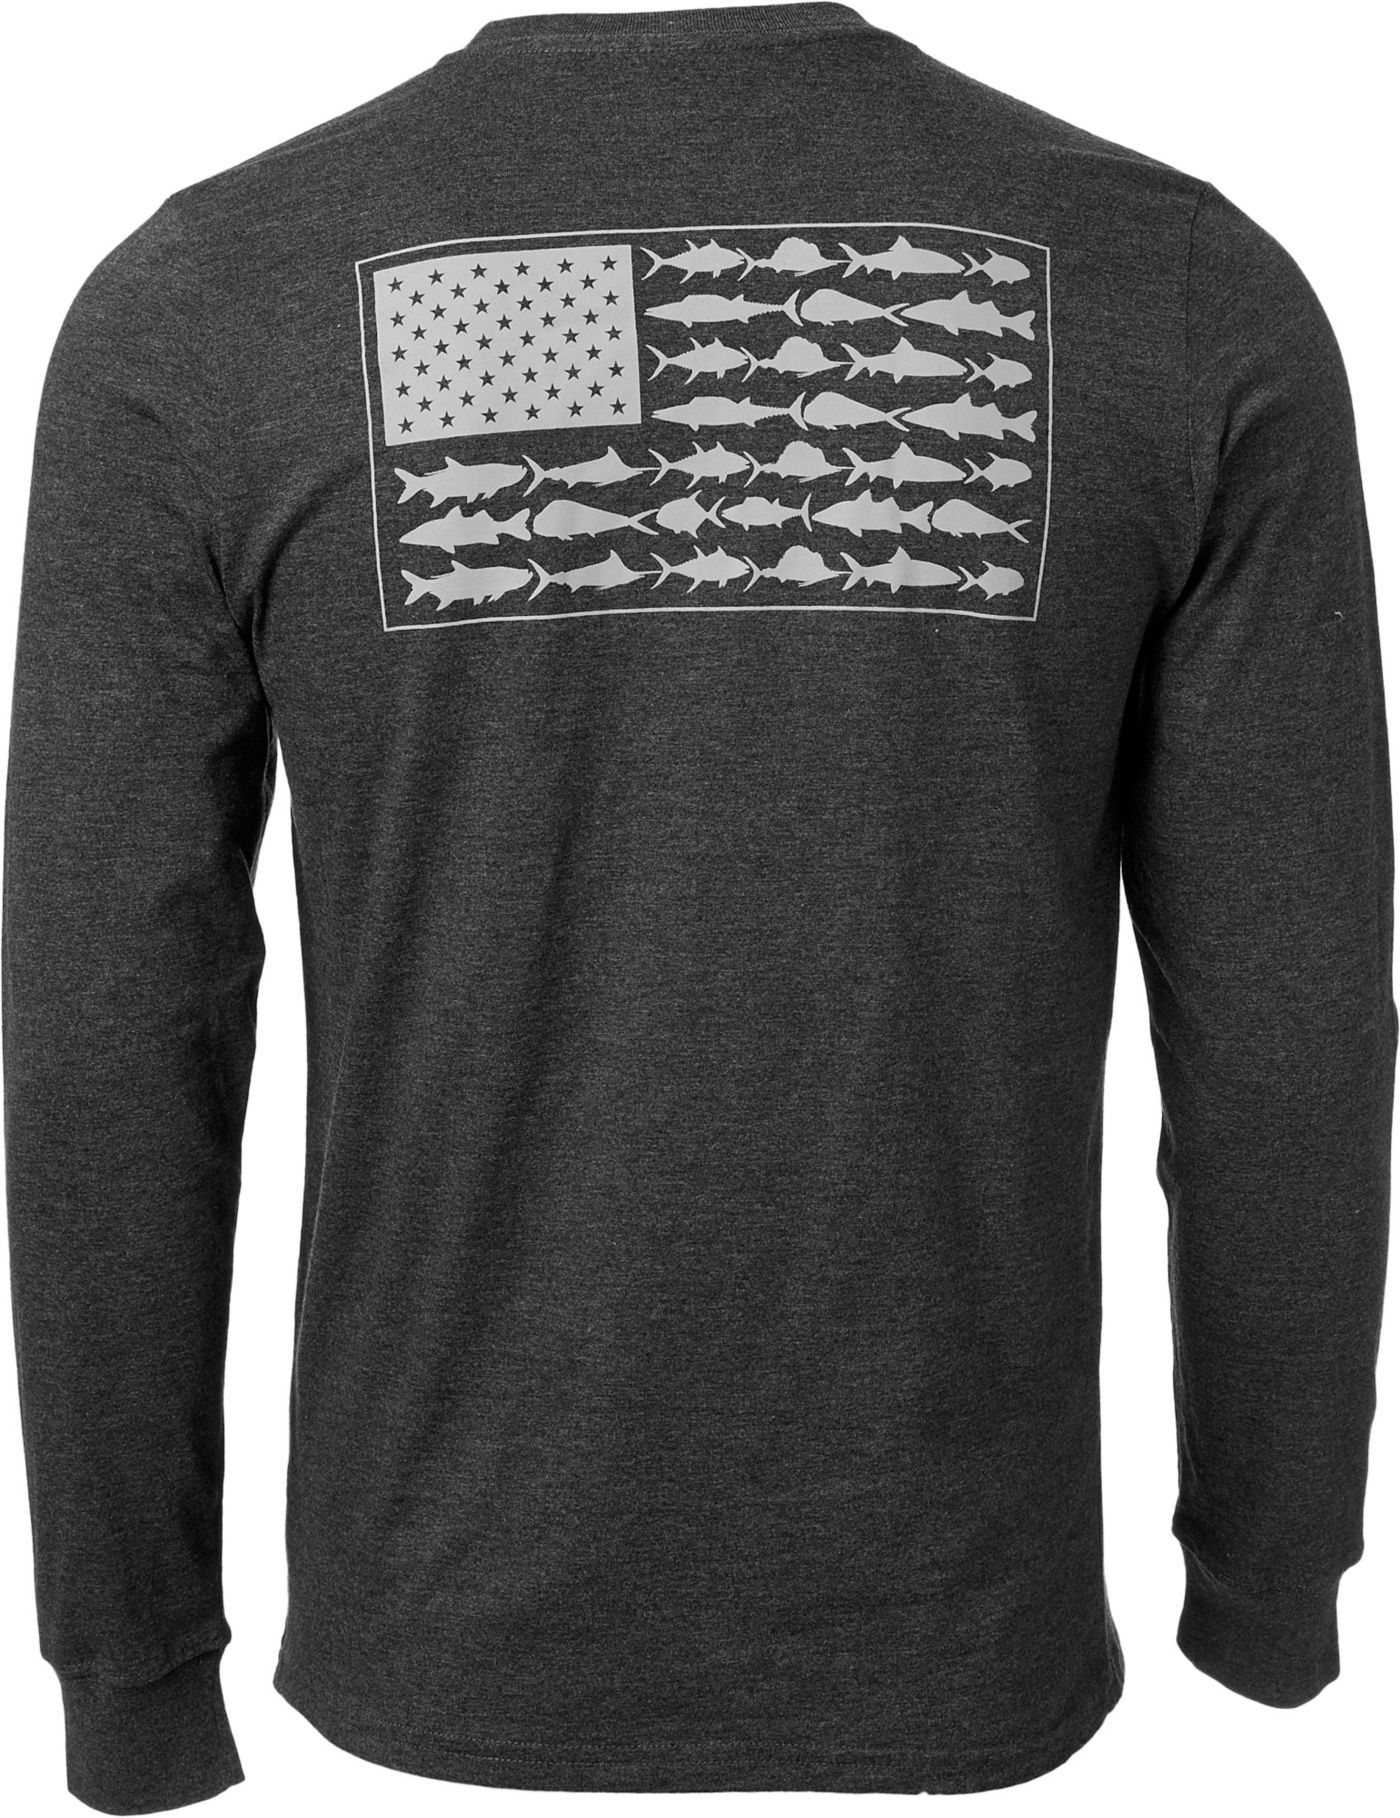 Columbia Men's PFG Americana Saltwater Fish Flag Long Sleeve Shirt